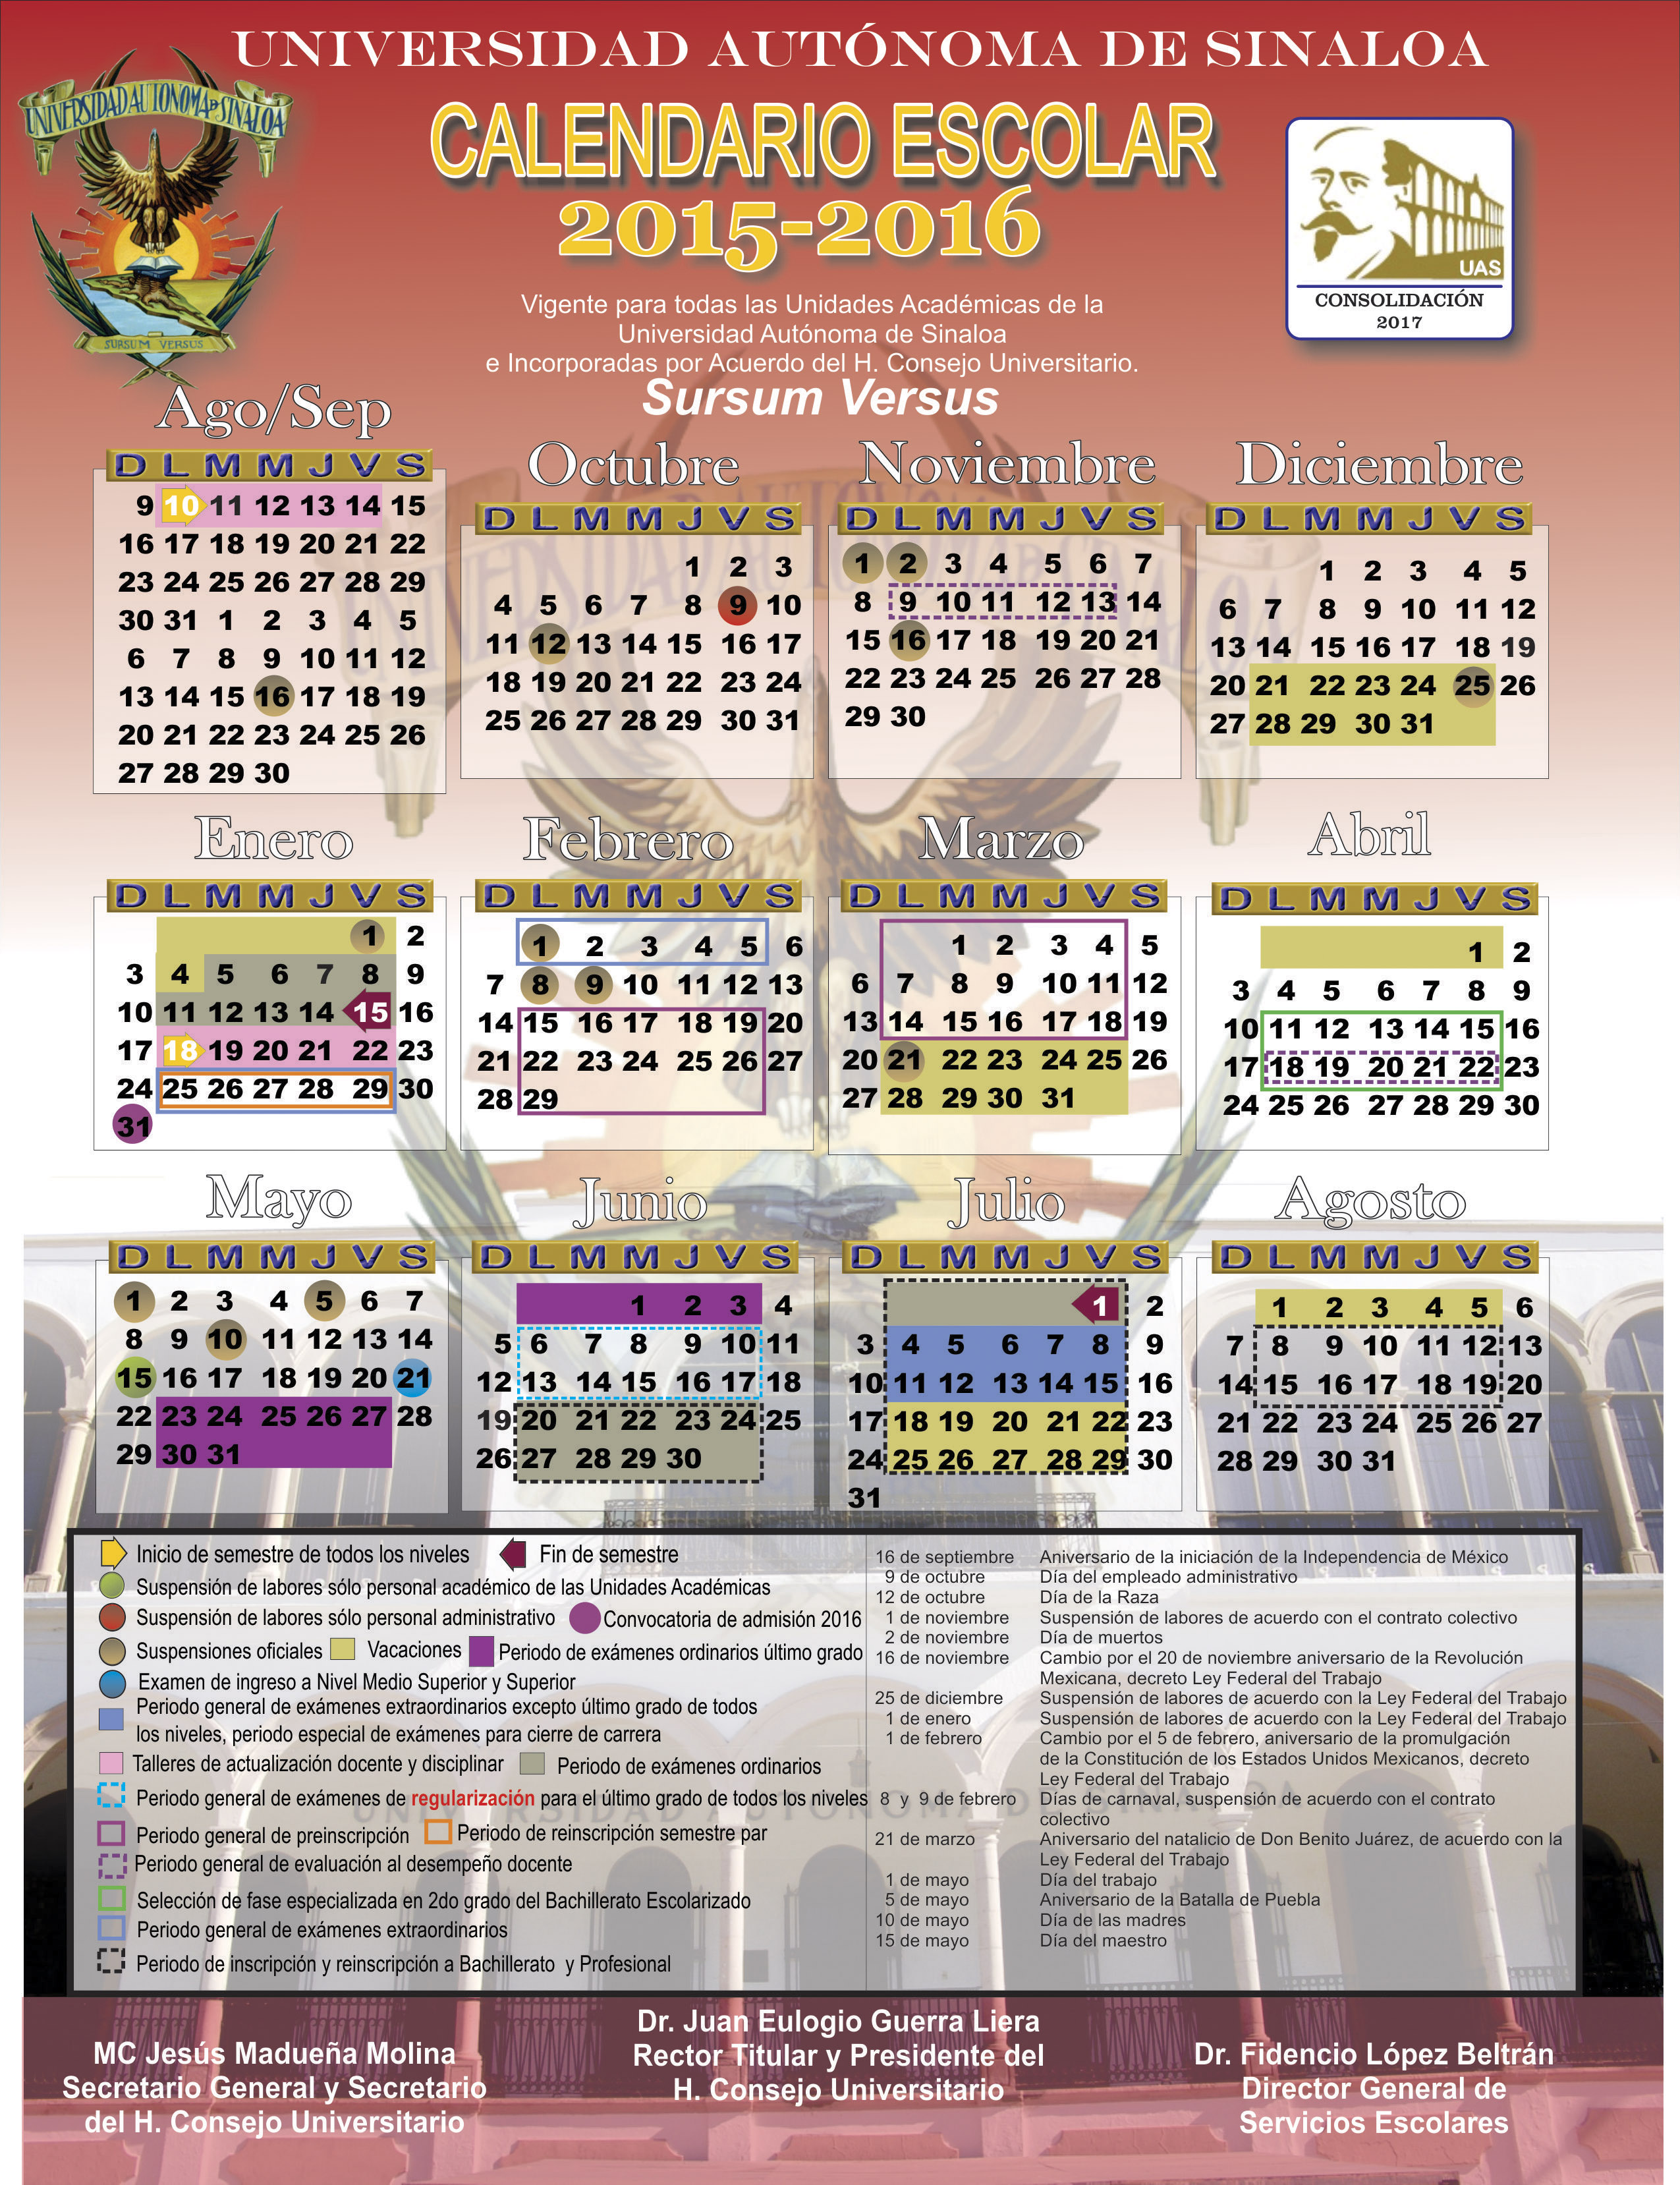 Calendario General de la Universidad Autónoma de Sinaloa 2015-2016